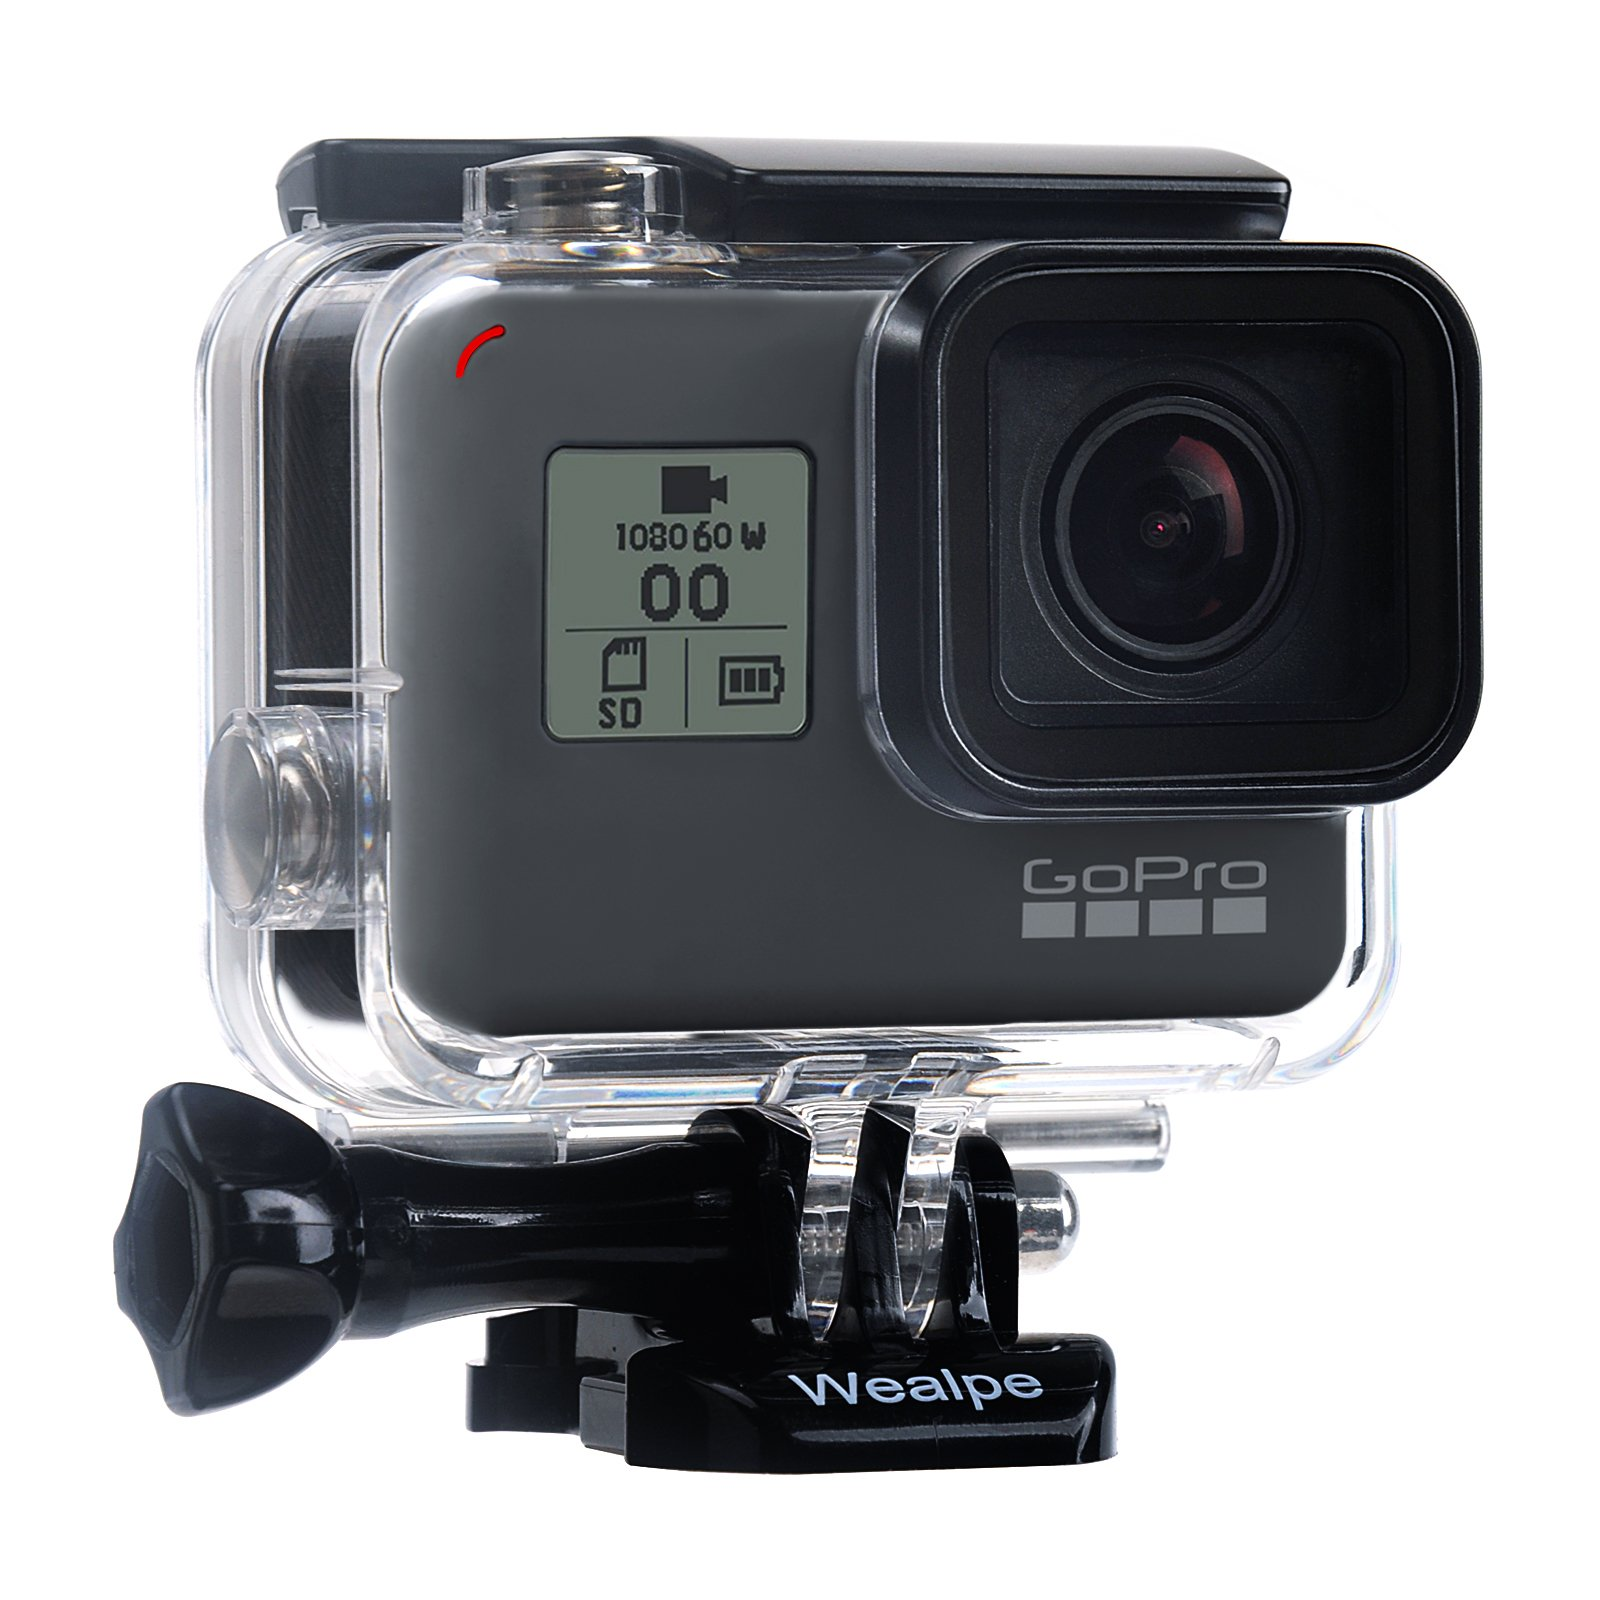 Wealpe Waterproof Housing Case Underwater Protective Dive Housing Compatible with GoPro Hero (2018), 6, 5 Cameras